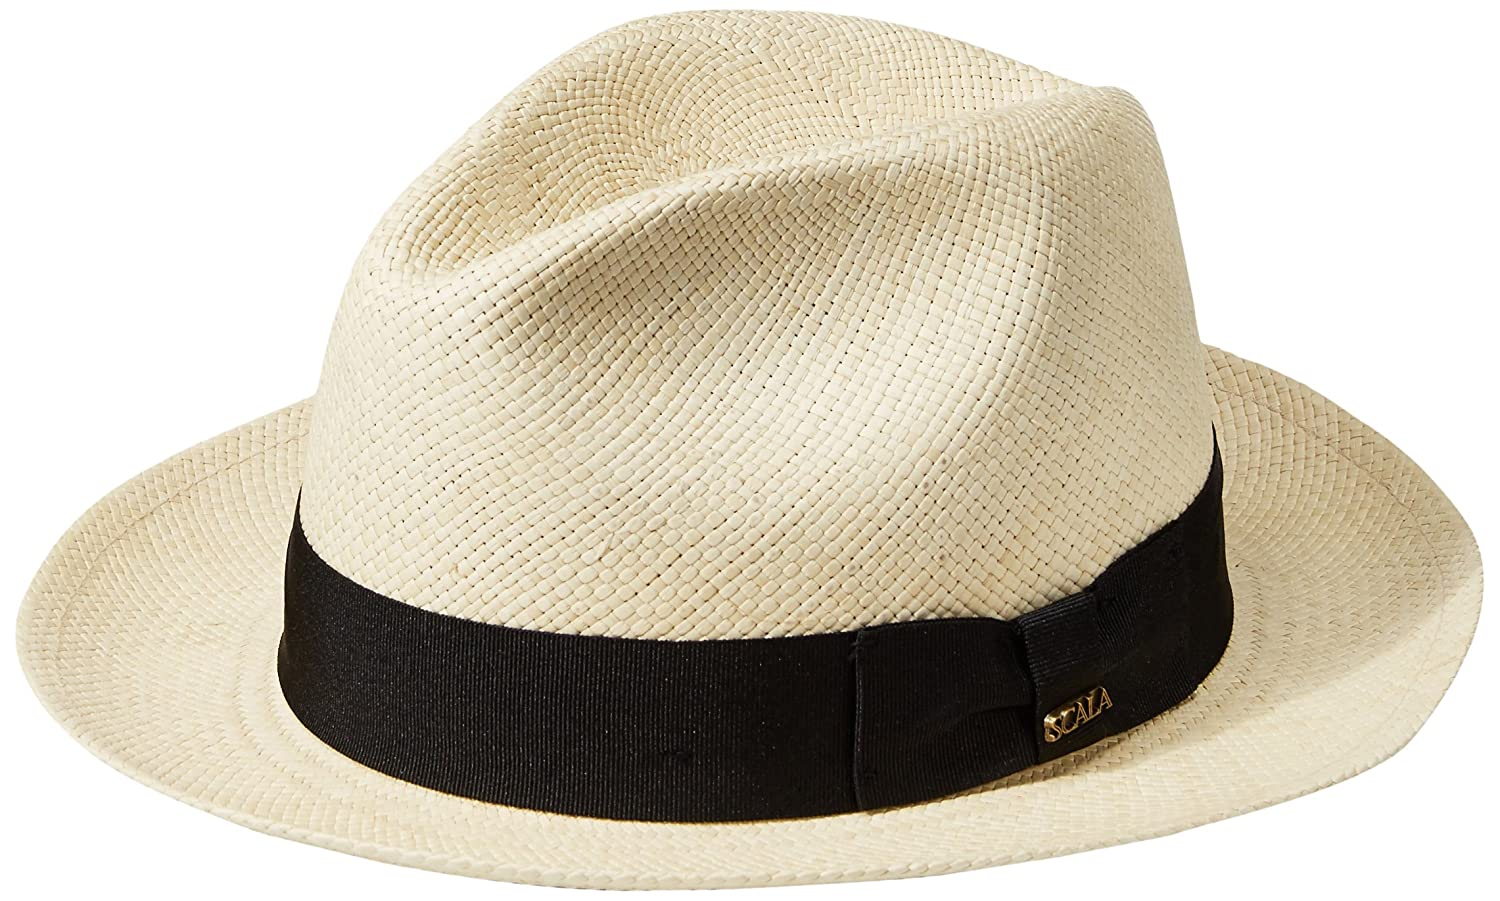 a1fdb141 Panama Hats : Online Shopping for Clothing, Shoes, Jewelry, Pet ...